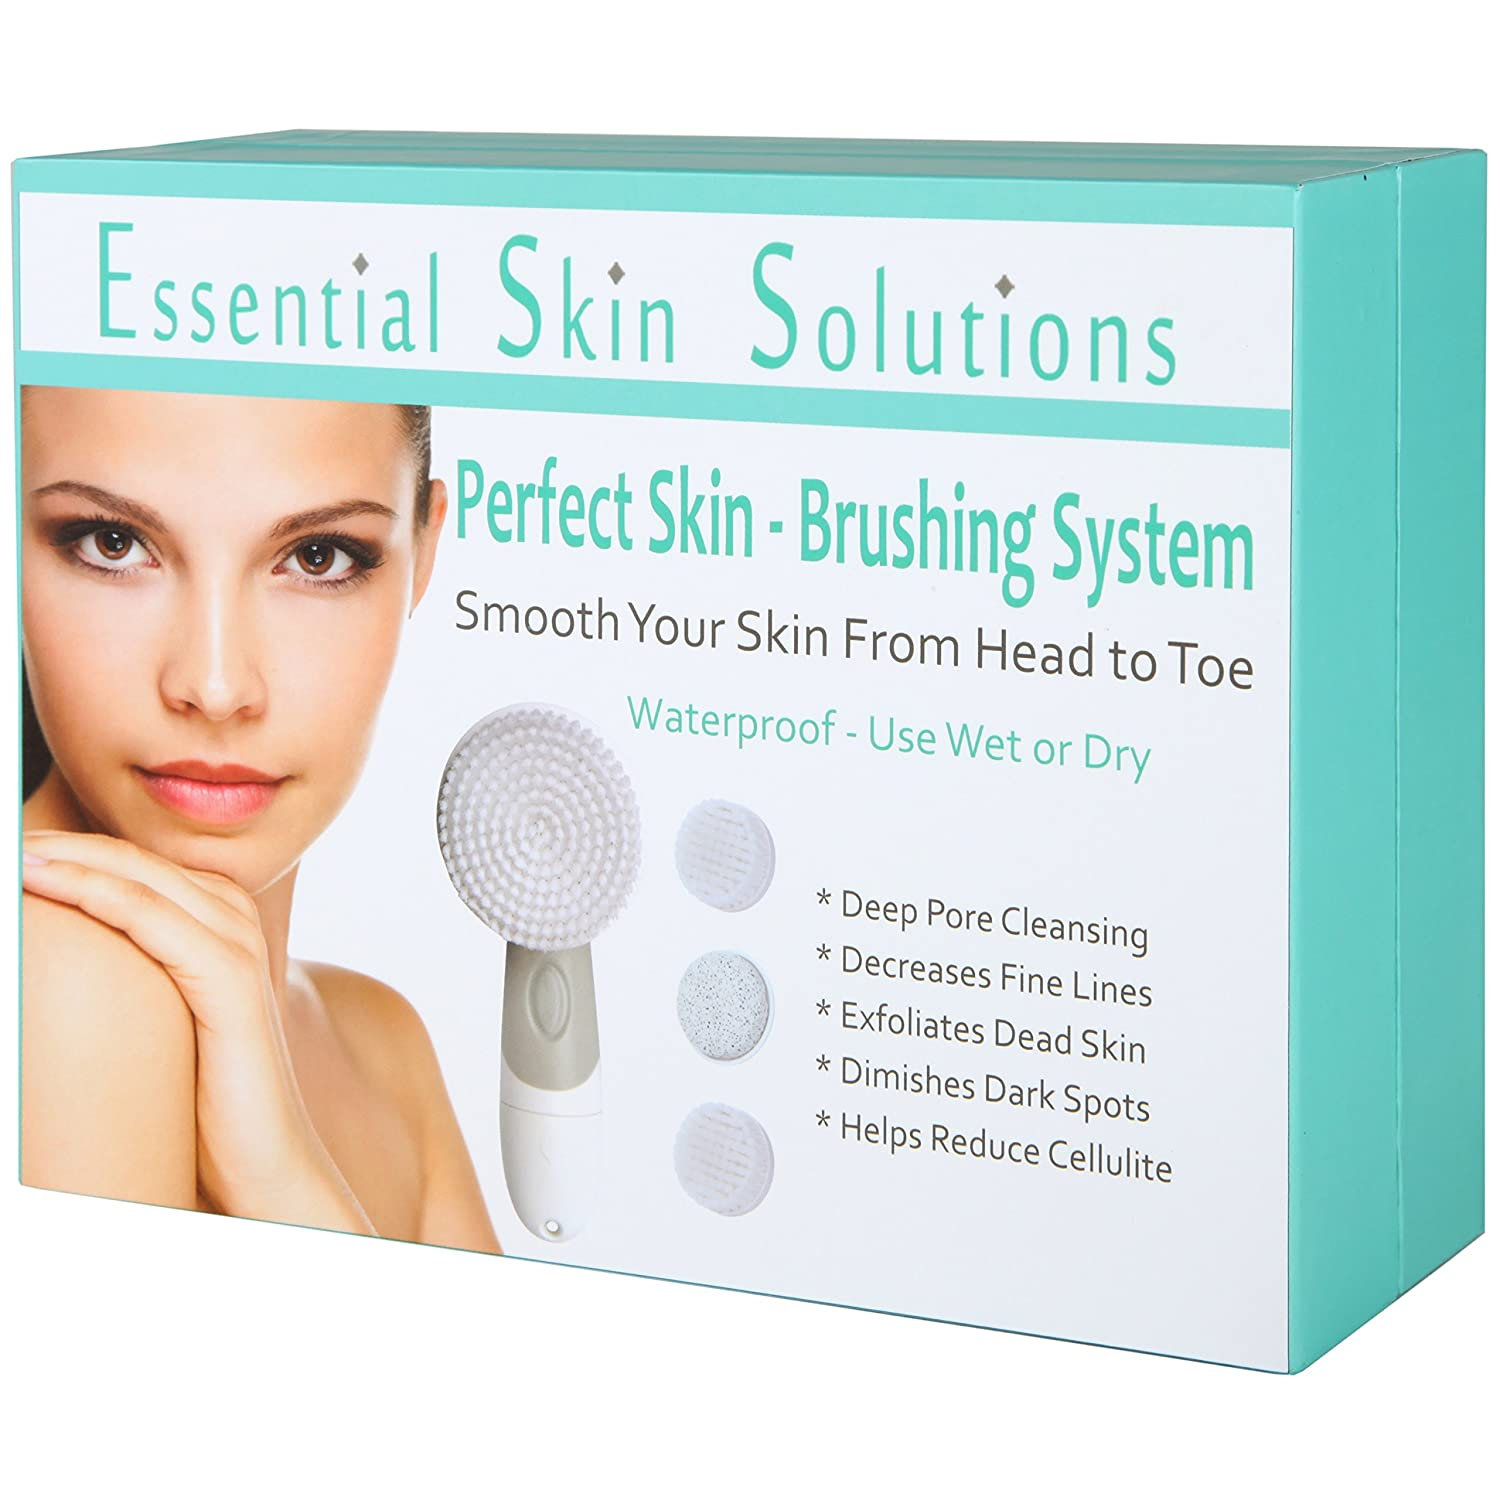 Amazon: Essential Skin Solutions  Face And Body Brush Cleansing System  €� Exfoliating Facial Brush Microdermabrasion Pore Minimizer To Clean Skin +  Help